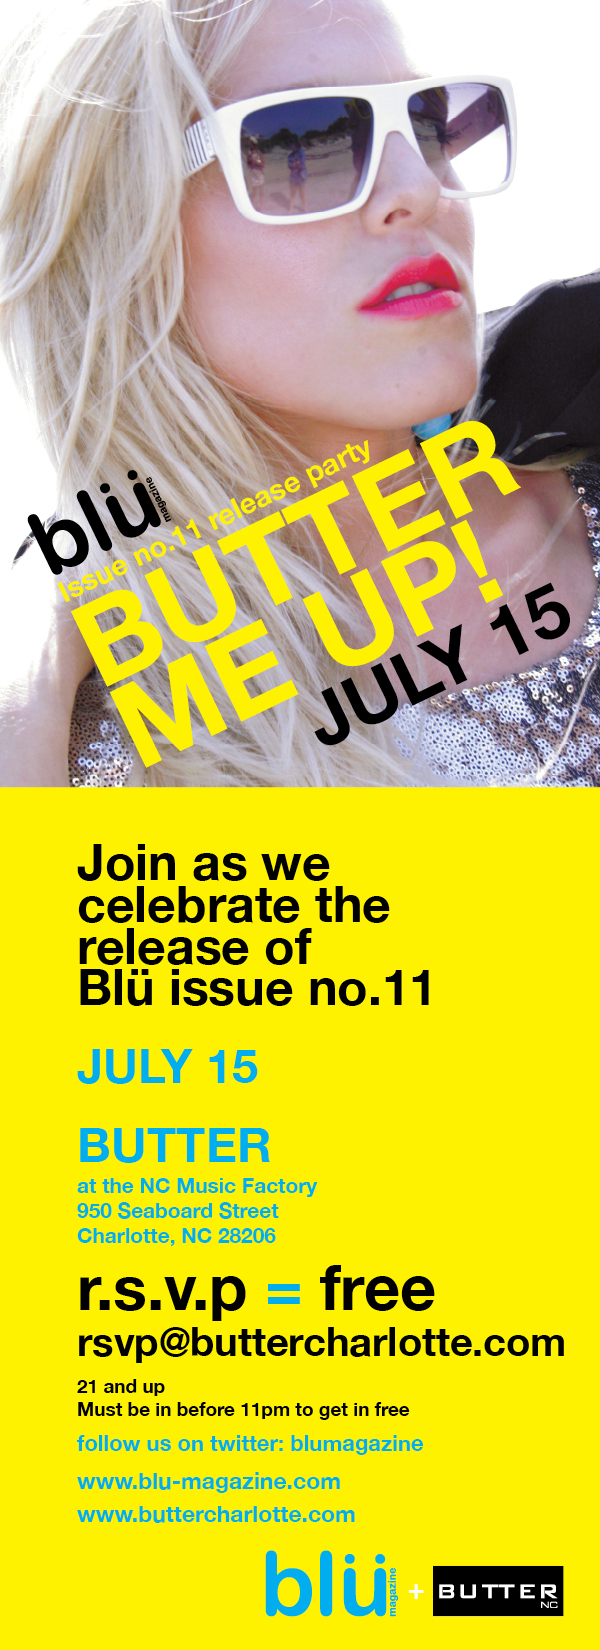 Blu Magazine Issue Party July 15th